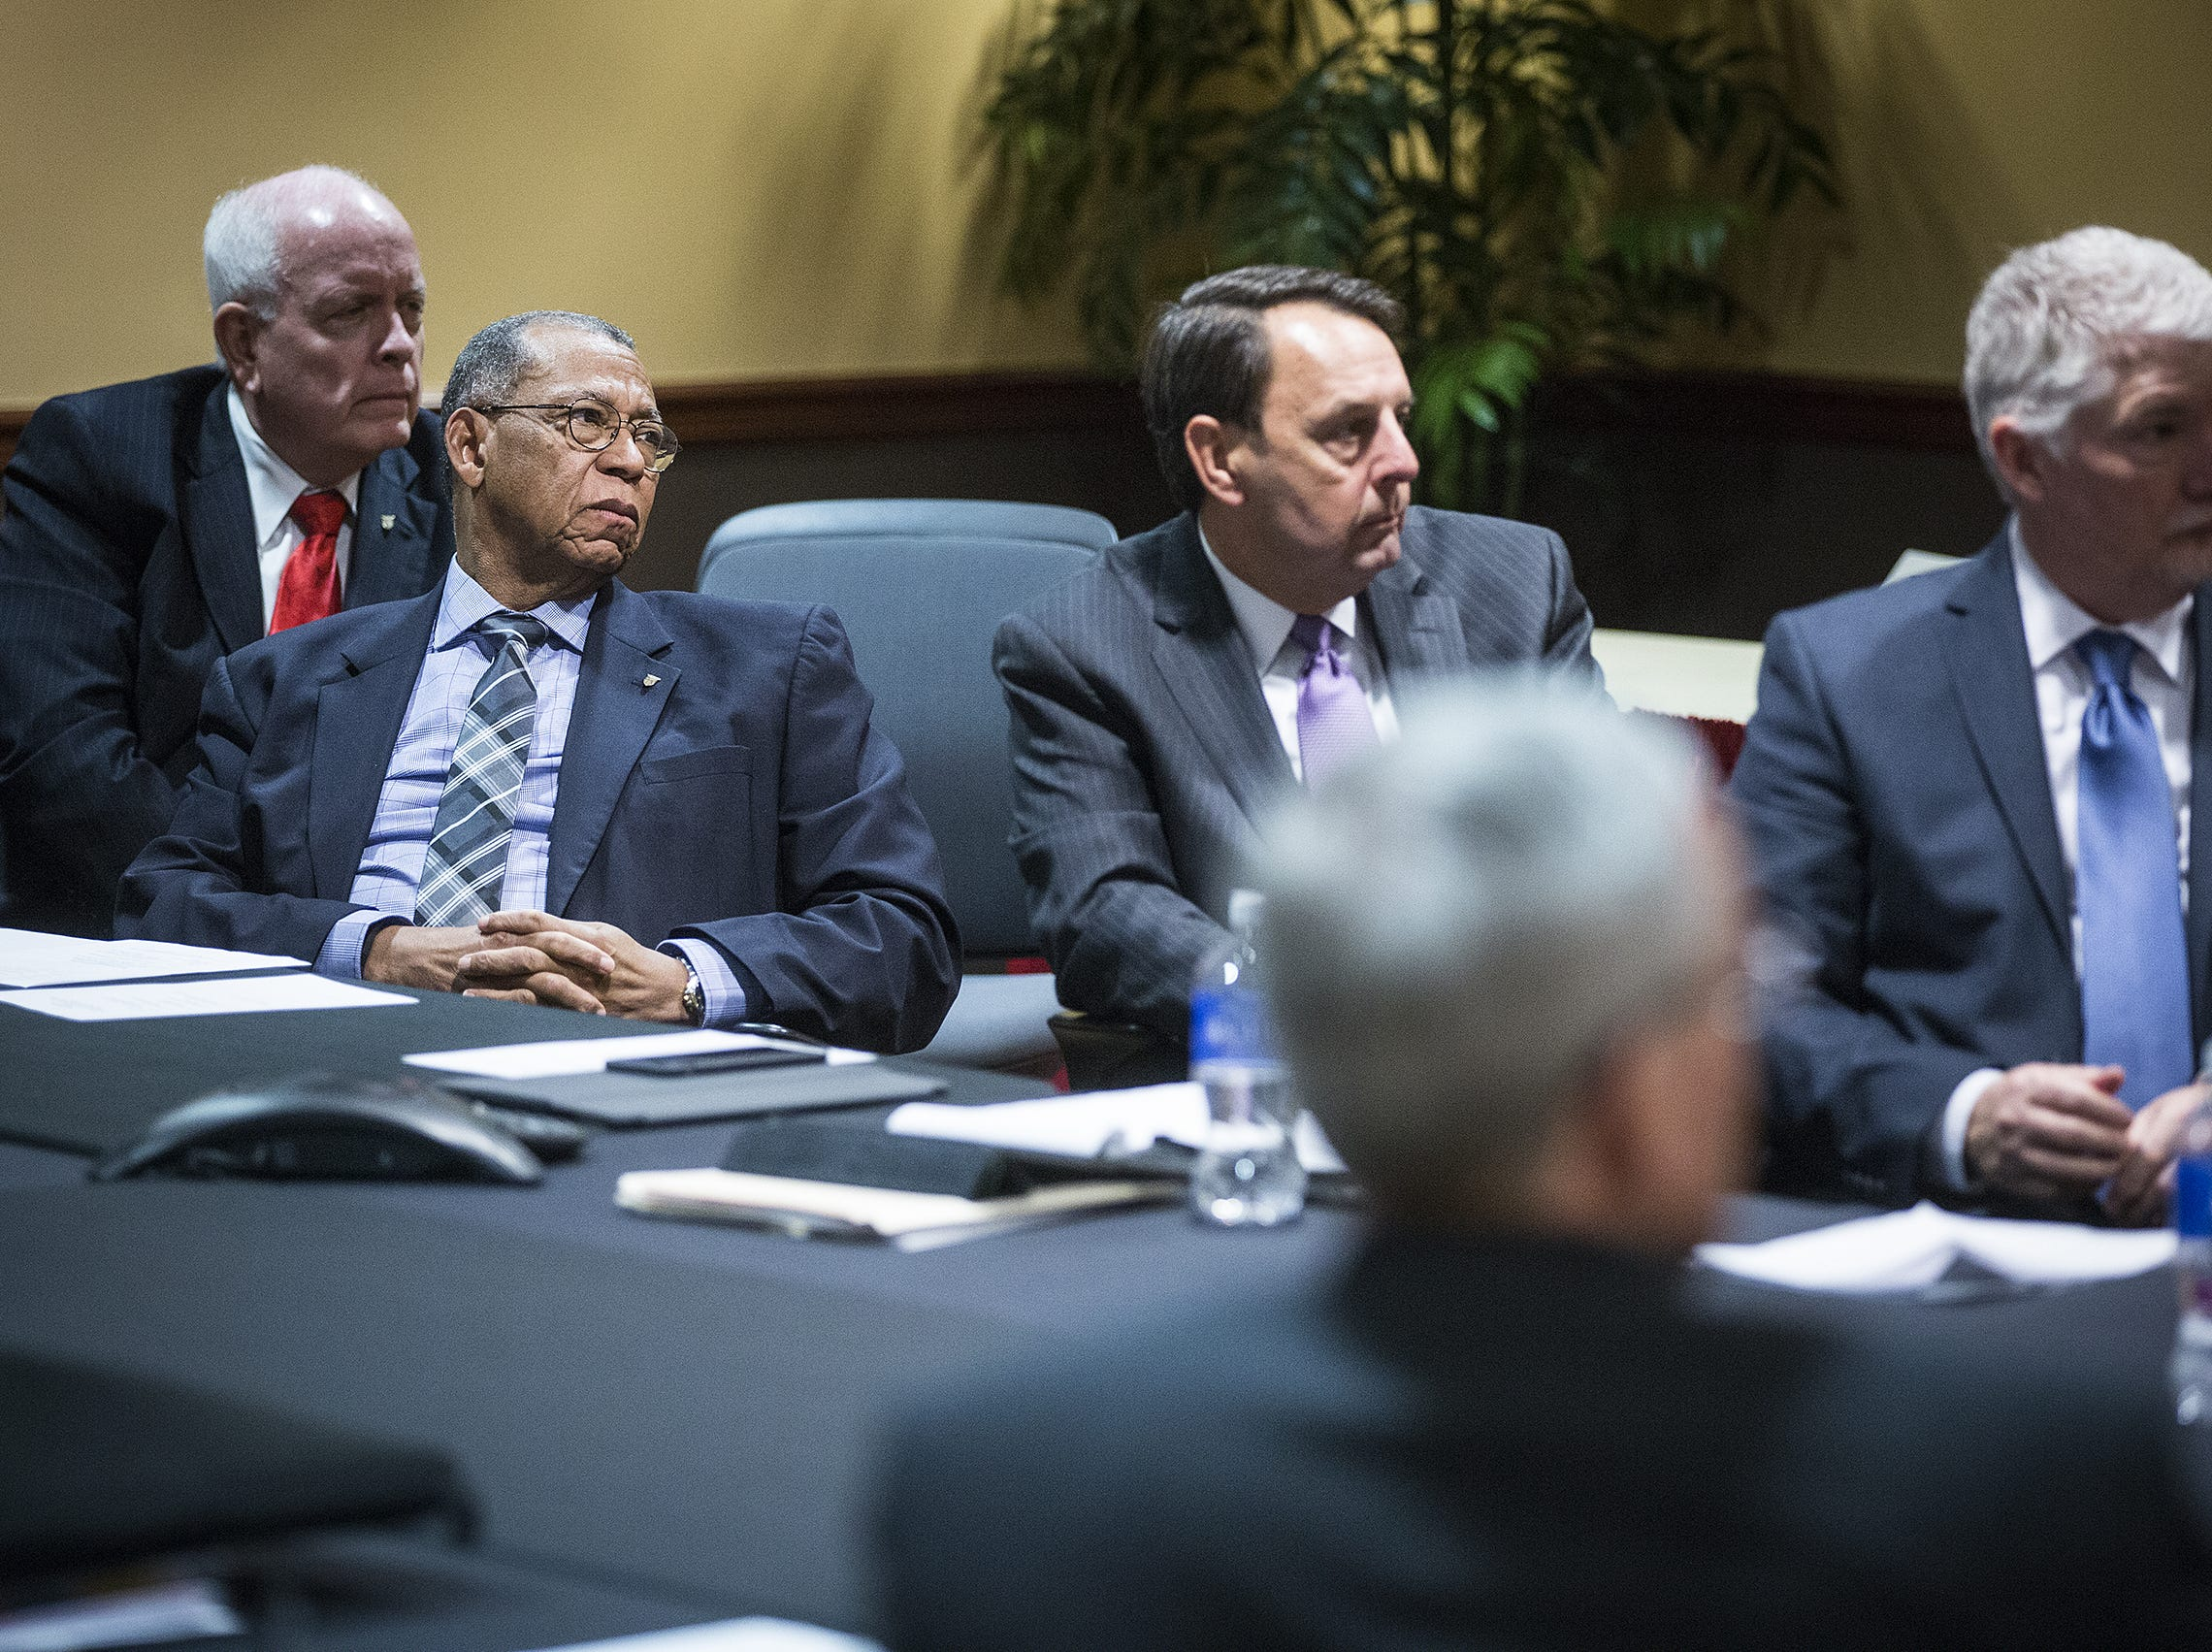 Ball State Board of Trustees members (from left) Frank Hancock, Hollis Hughes Jr. and Wayne Estopinal at ameeting at the Student Center.